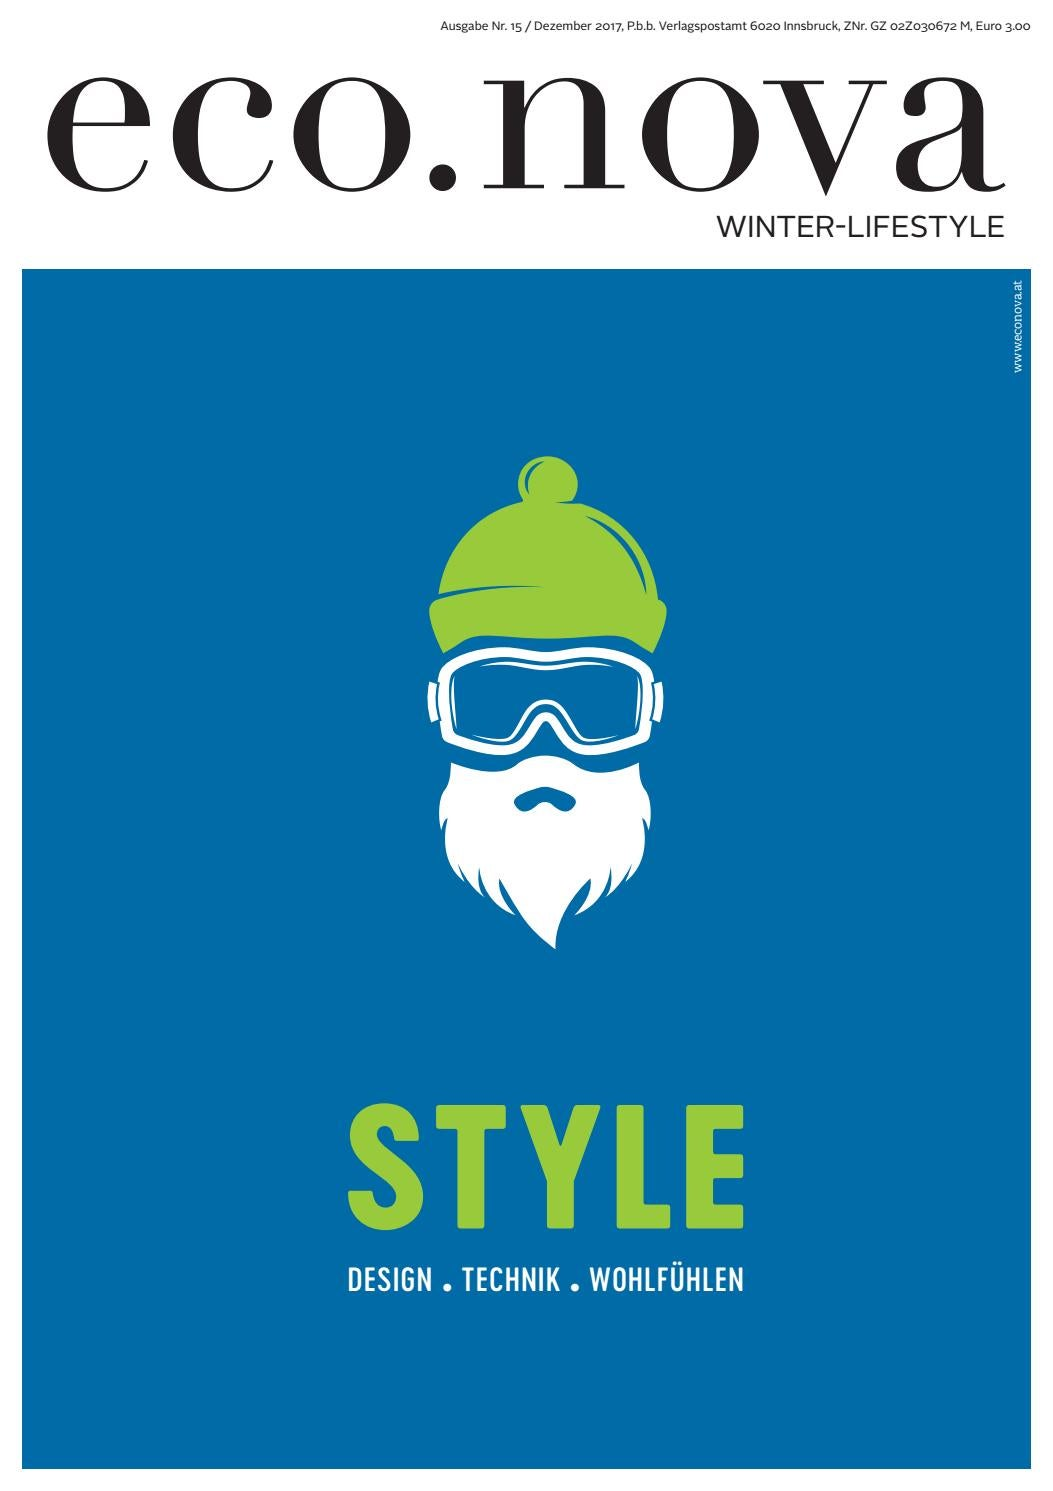 Eco.nova SPEZIAL Winter Lifestyle 2017 By Eco.nova Verlags Gmbh   Issuu